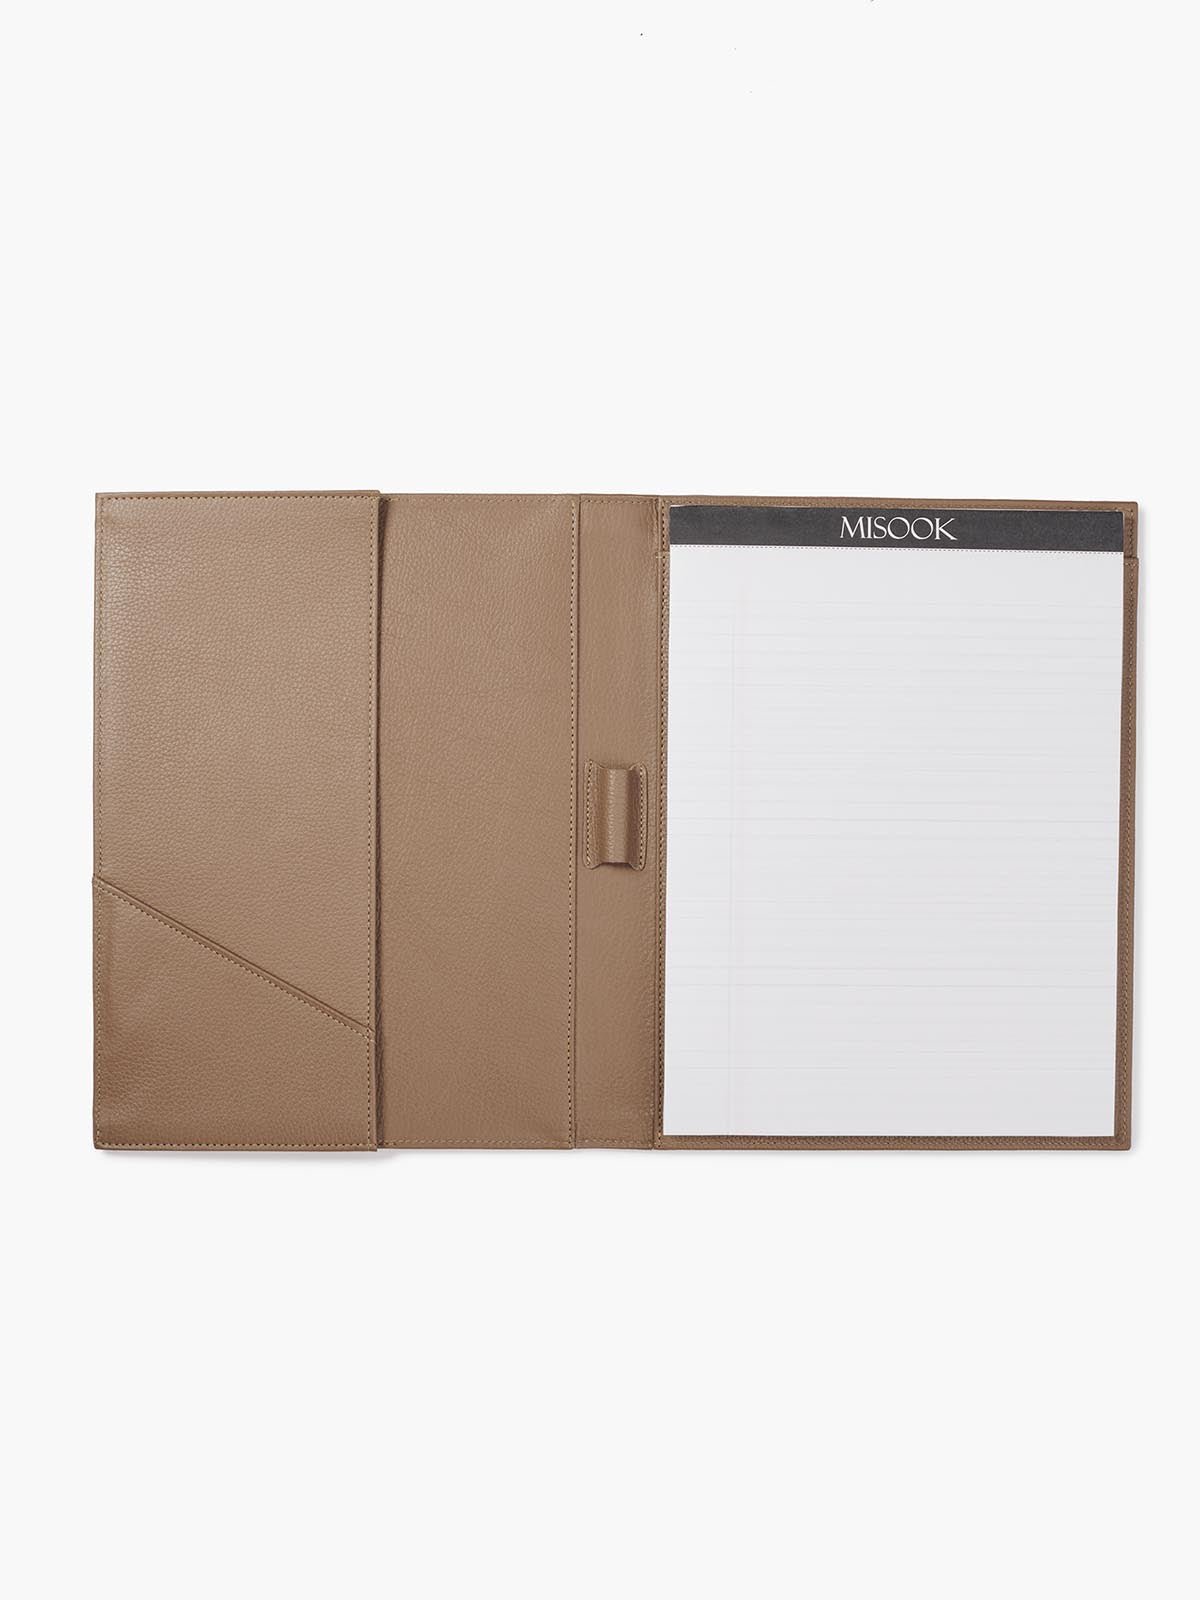 Open View of Leather Padfolio in Color Taupe with Lined Letter Pad, Pen Holder, Business Card Pocket, and a Gusseted Half Pocket